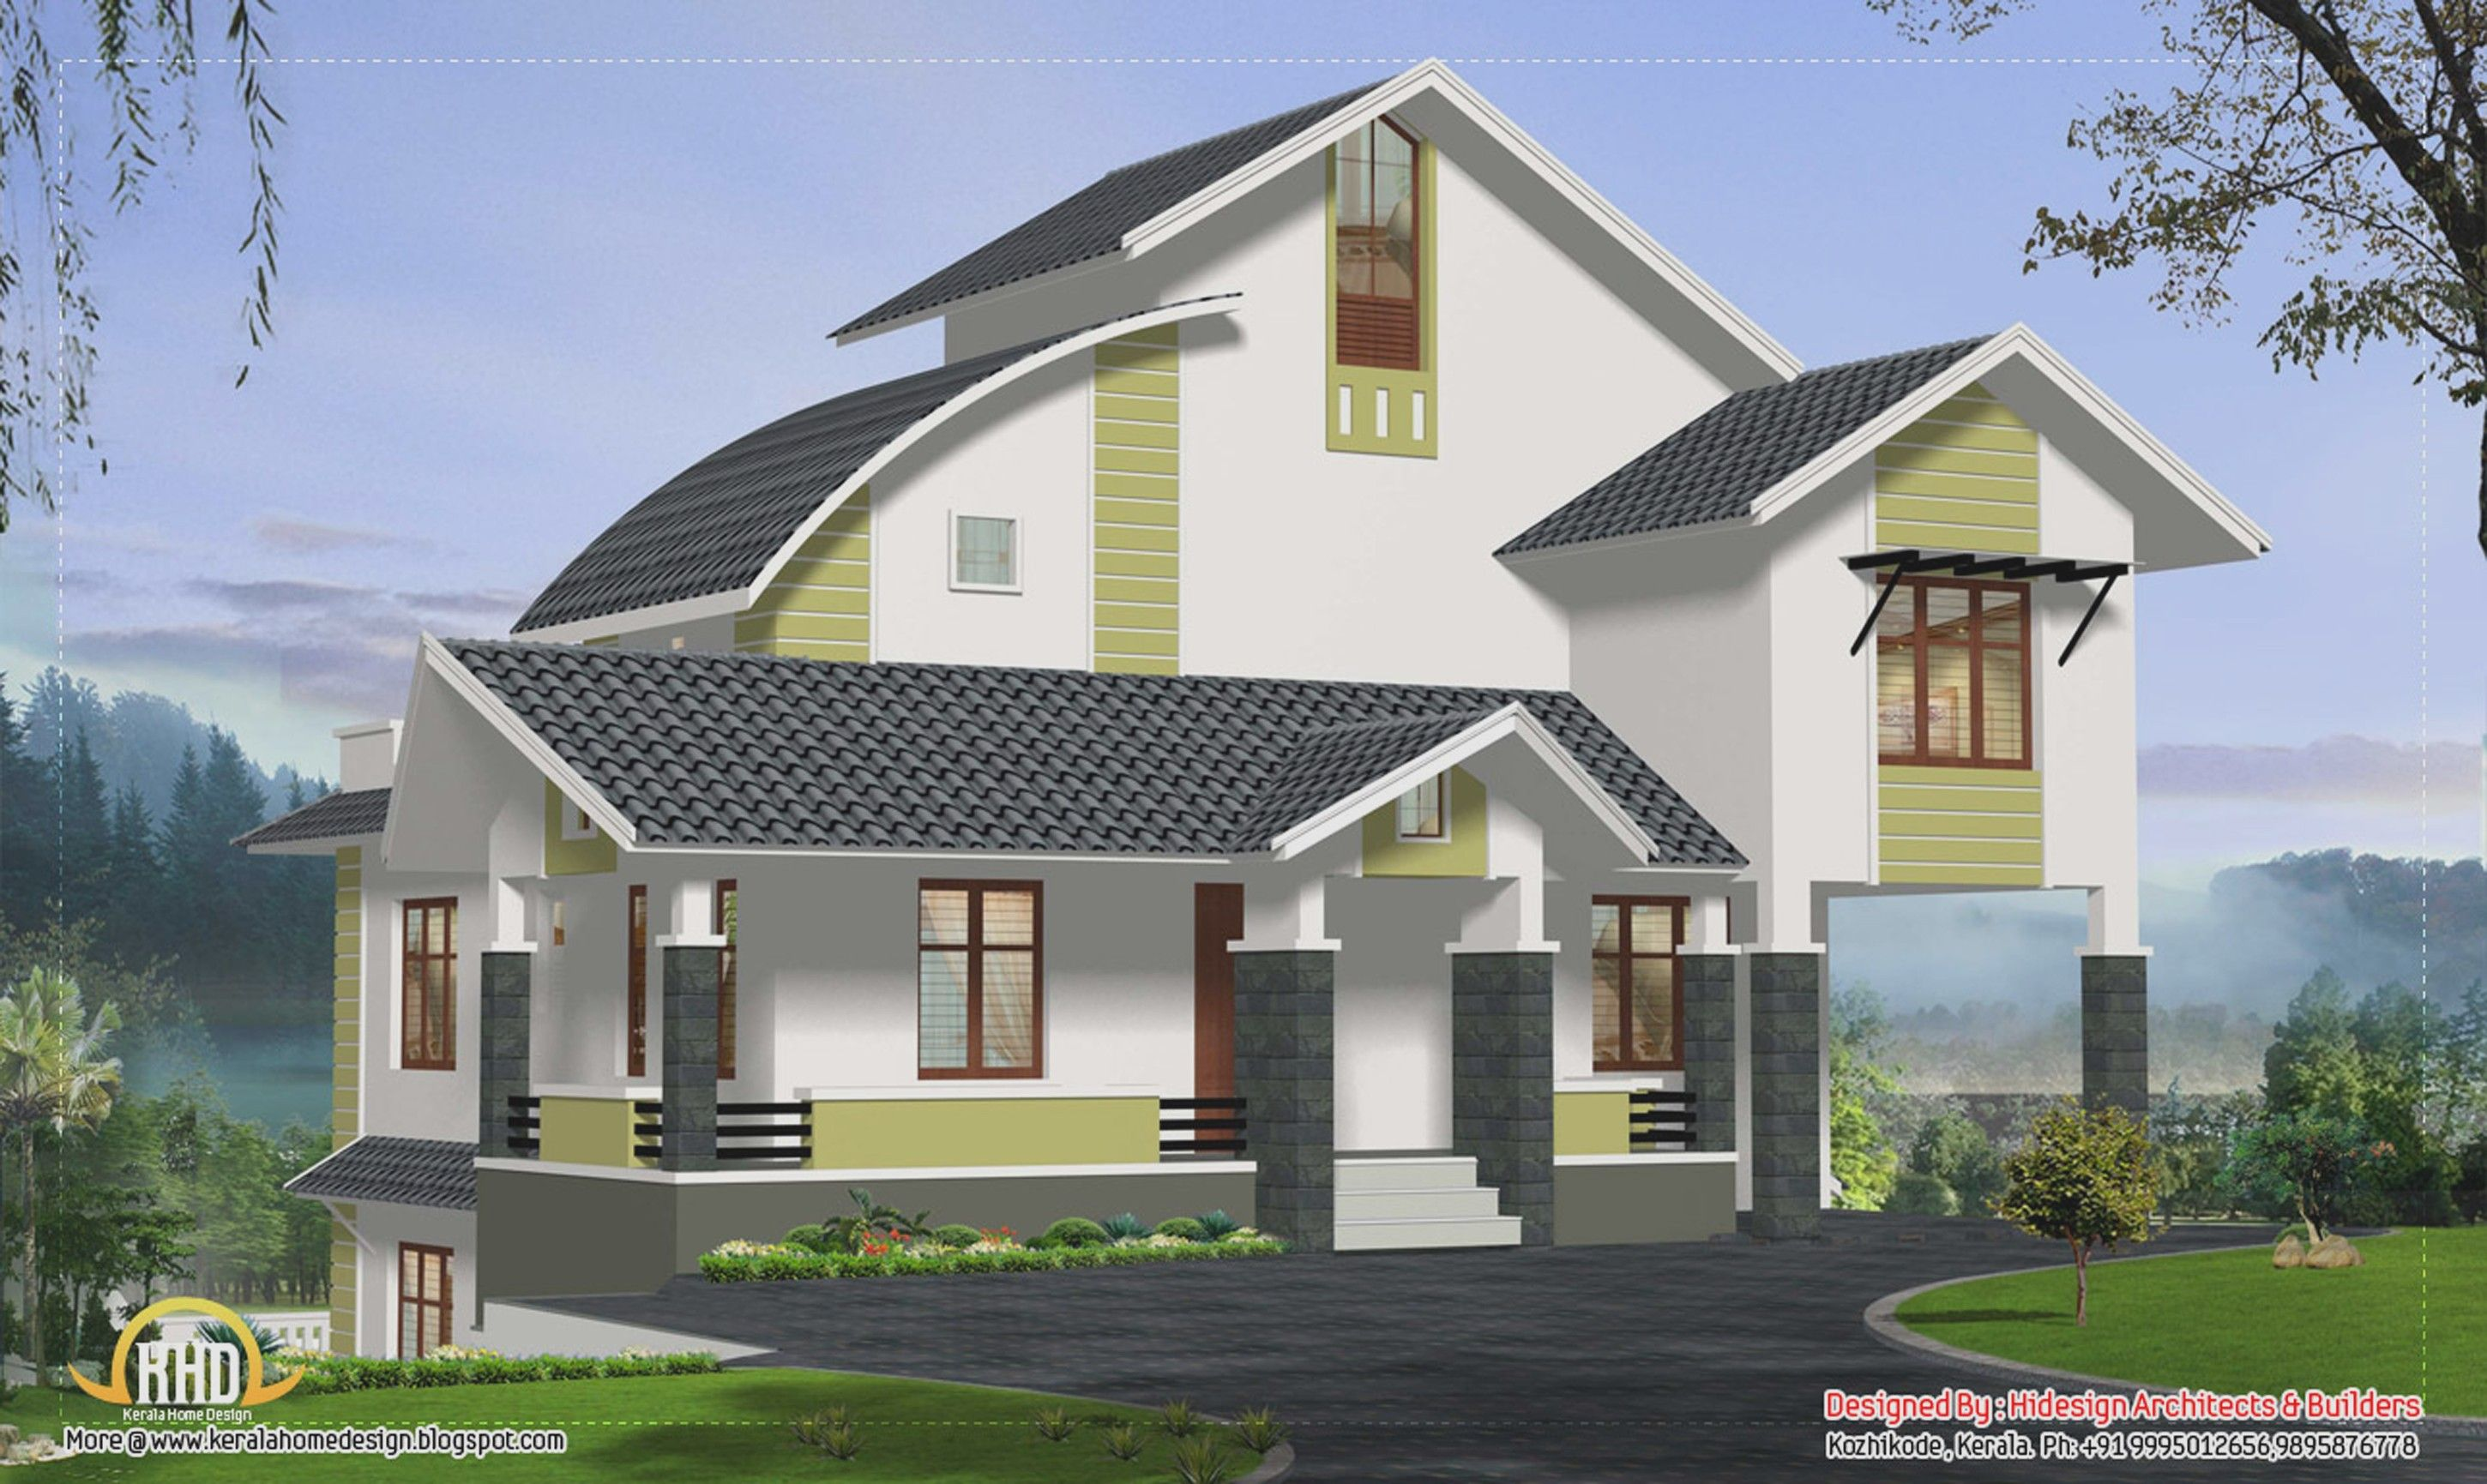 Flat Roof Houses Designs Fresh Simple Flat Roof House Designs Plans Trends Also For With Flat Roof House Designs Flat Roof House Roof Design